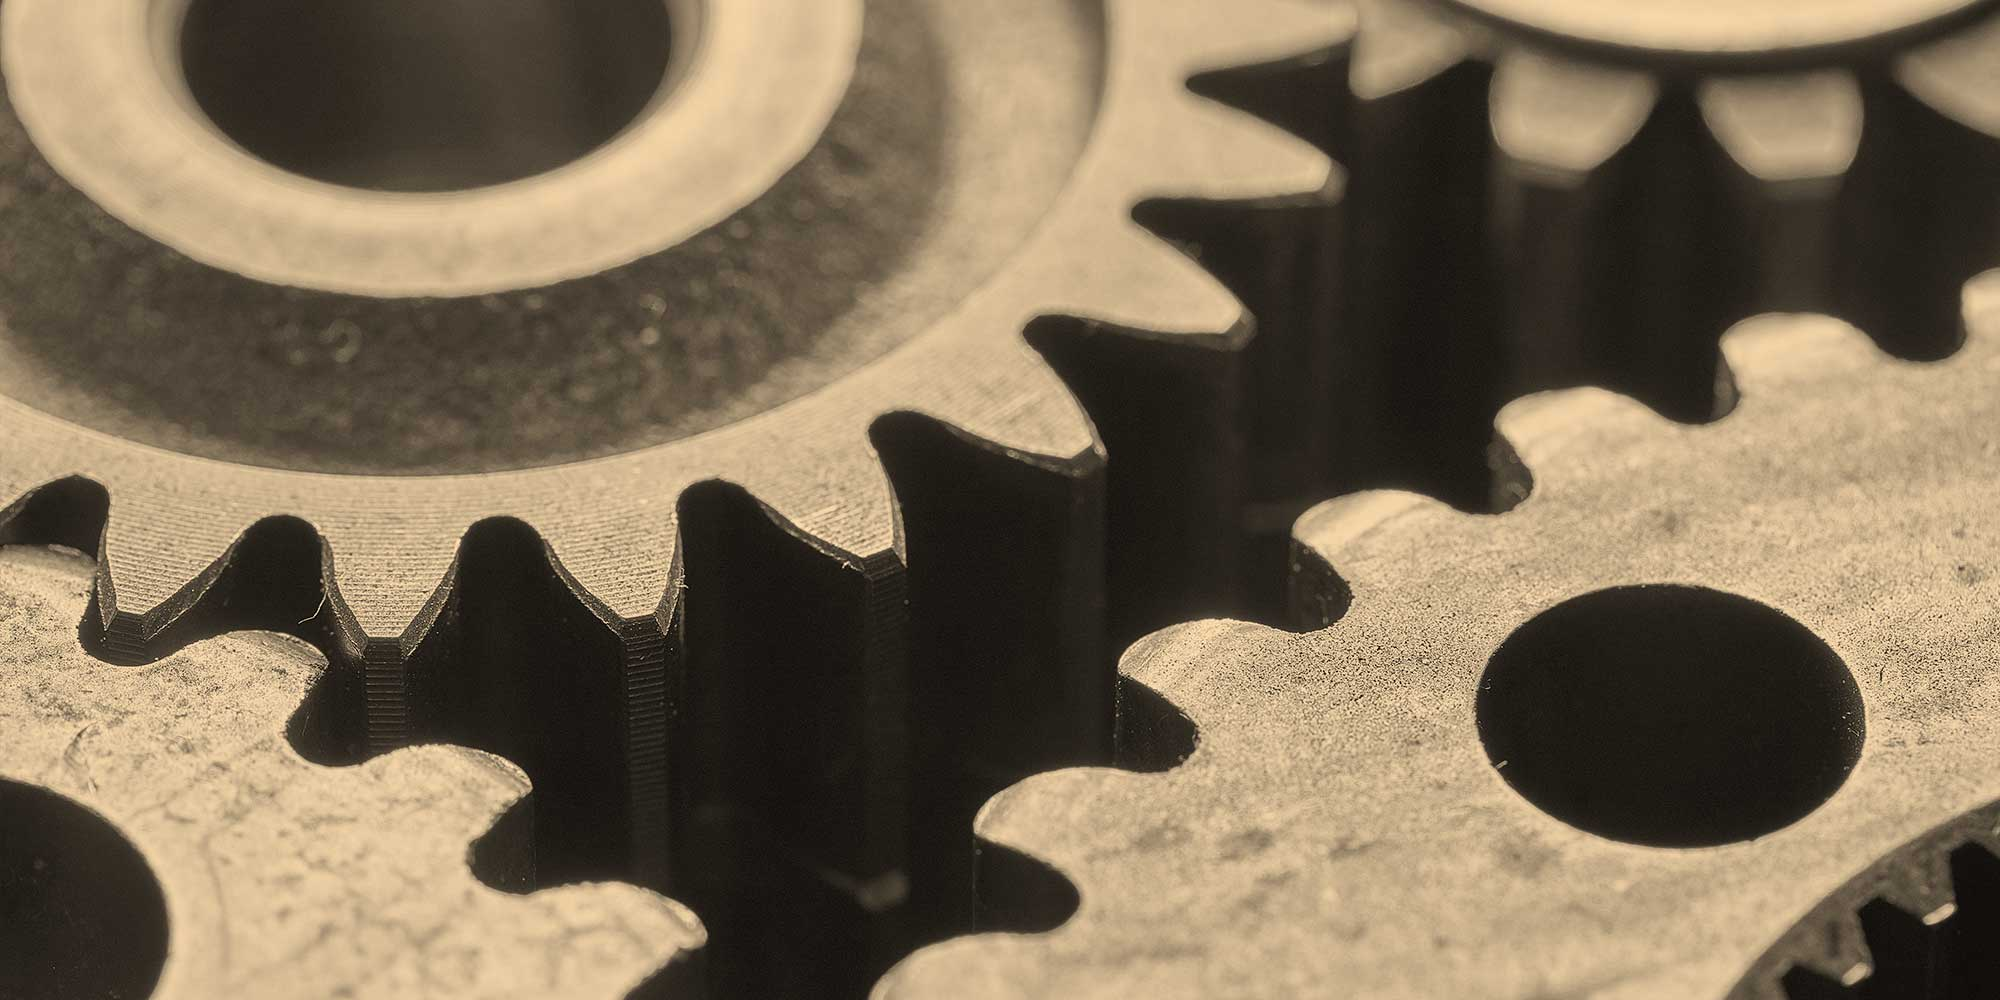 Gears turning together. employers-investing-employee-wellness